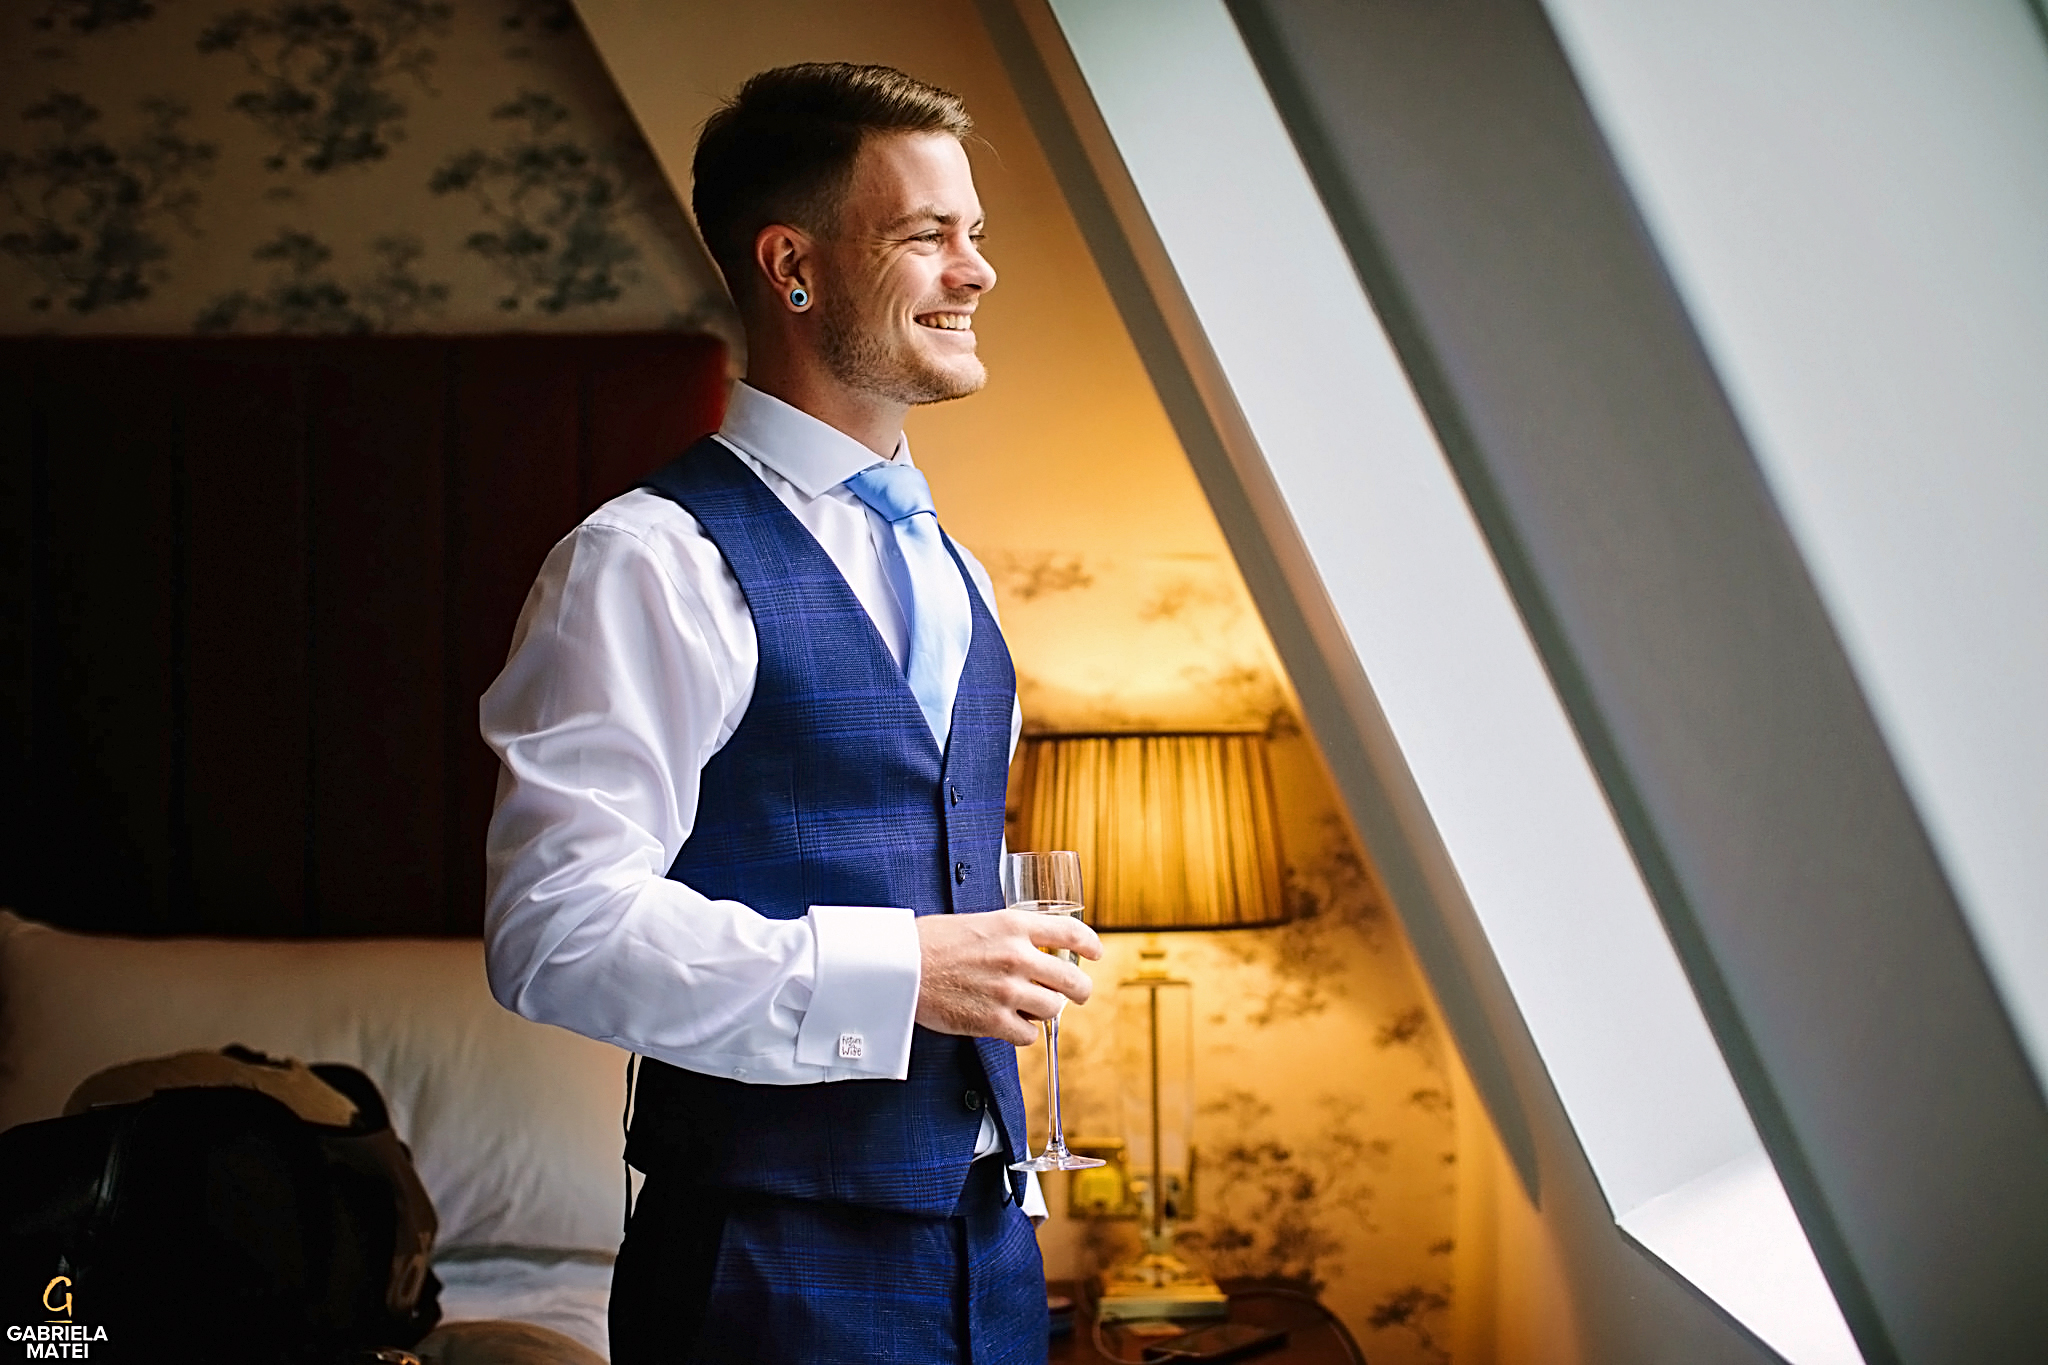 Groom looking out the window in hotel room in London